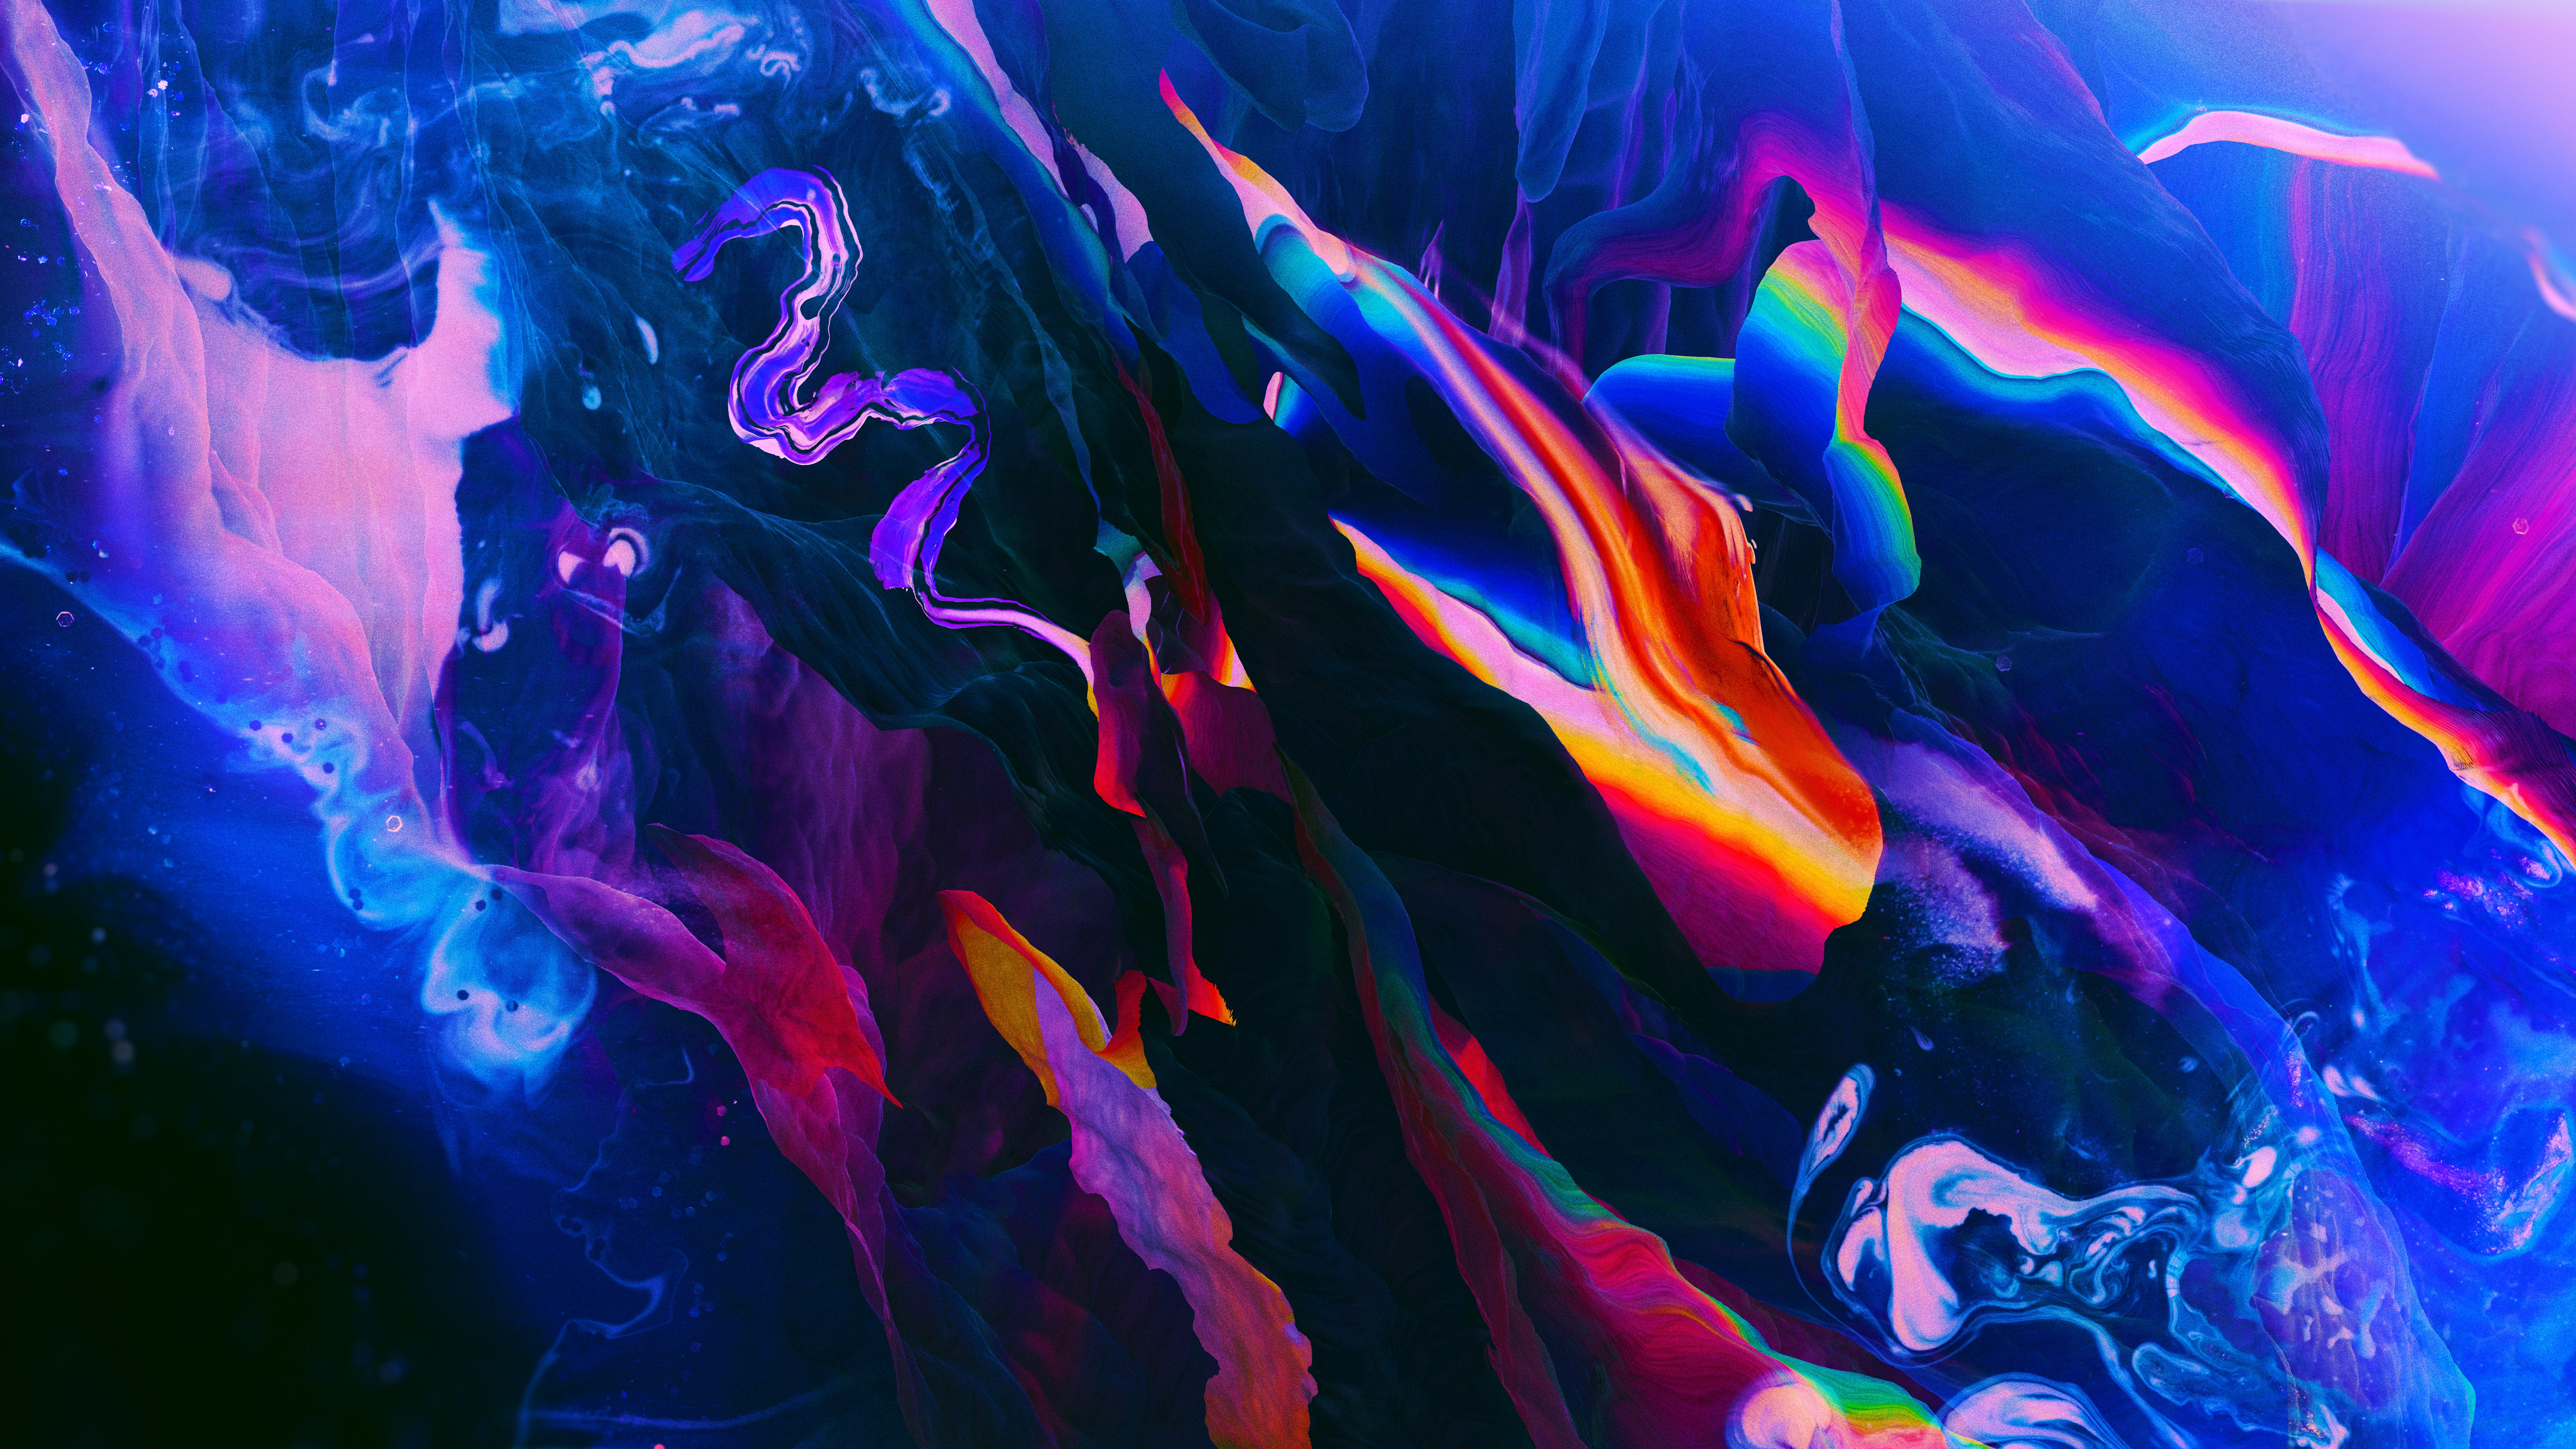 8k abstract wallpaper,blue,light,water,purple,red